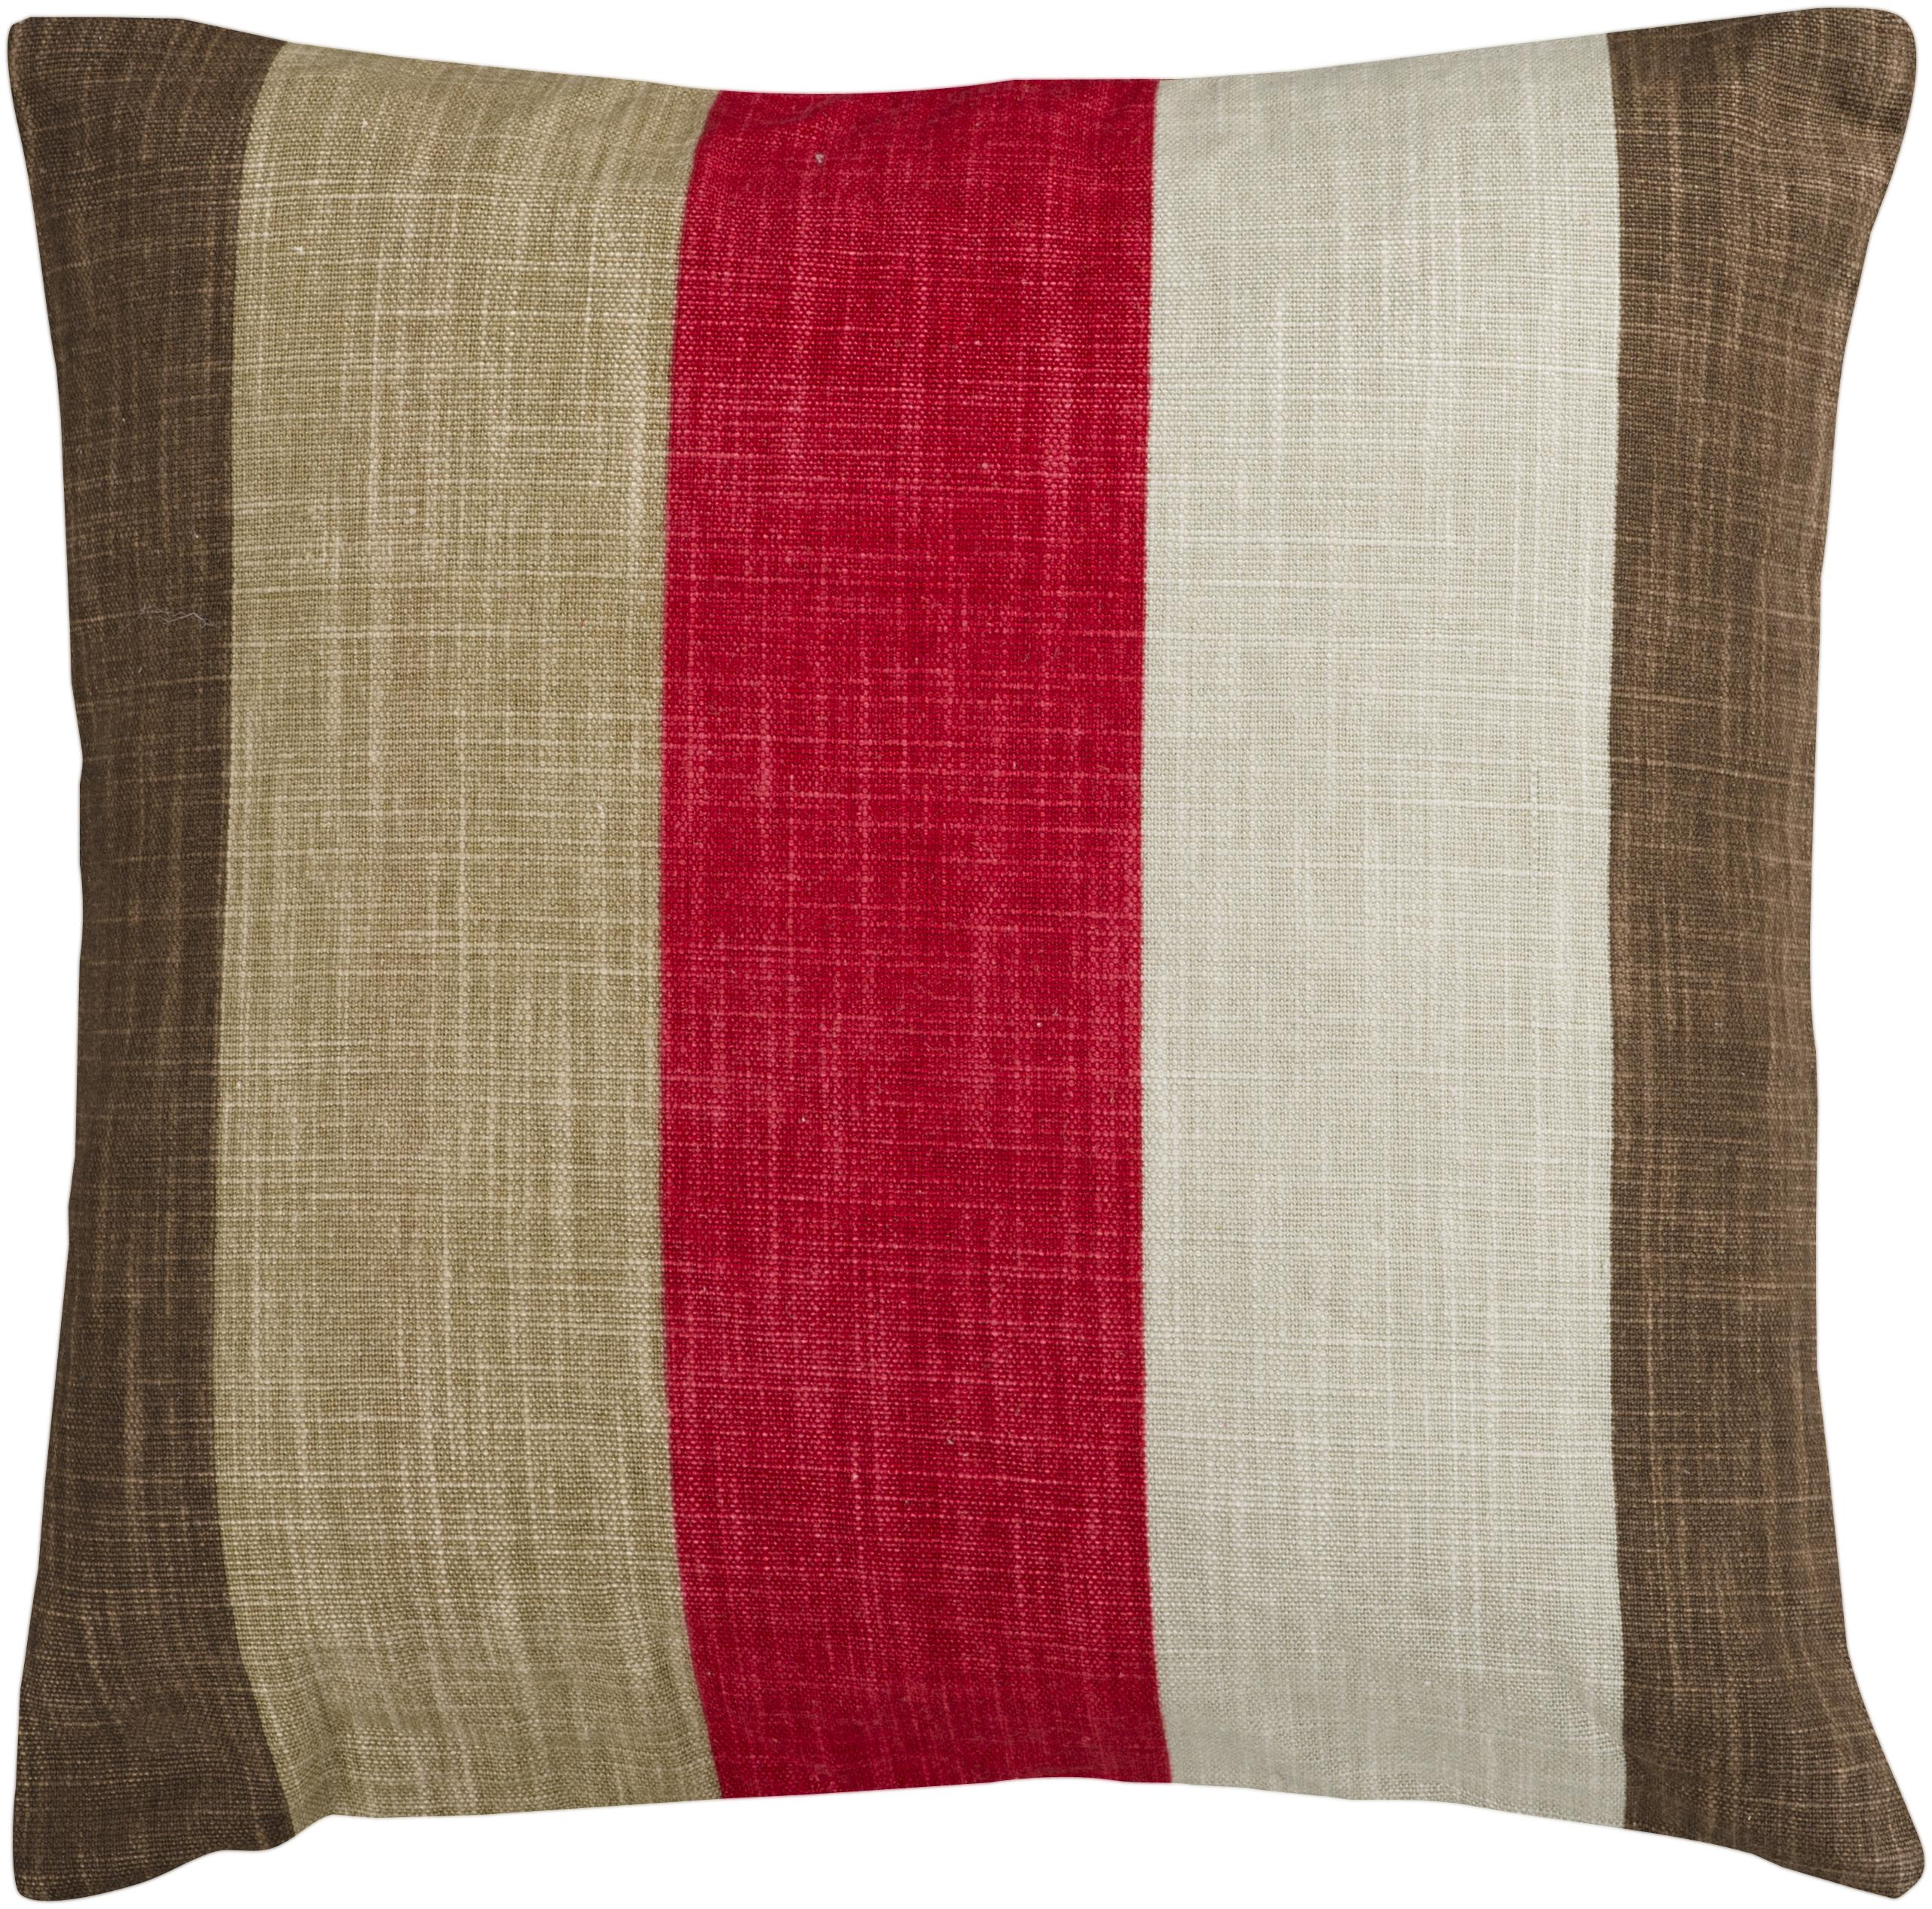 "Surya Rugs Pillows 22"" x 22"" Pillow - Item Number: JS012-2222P"